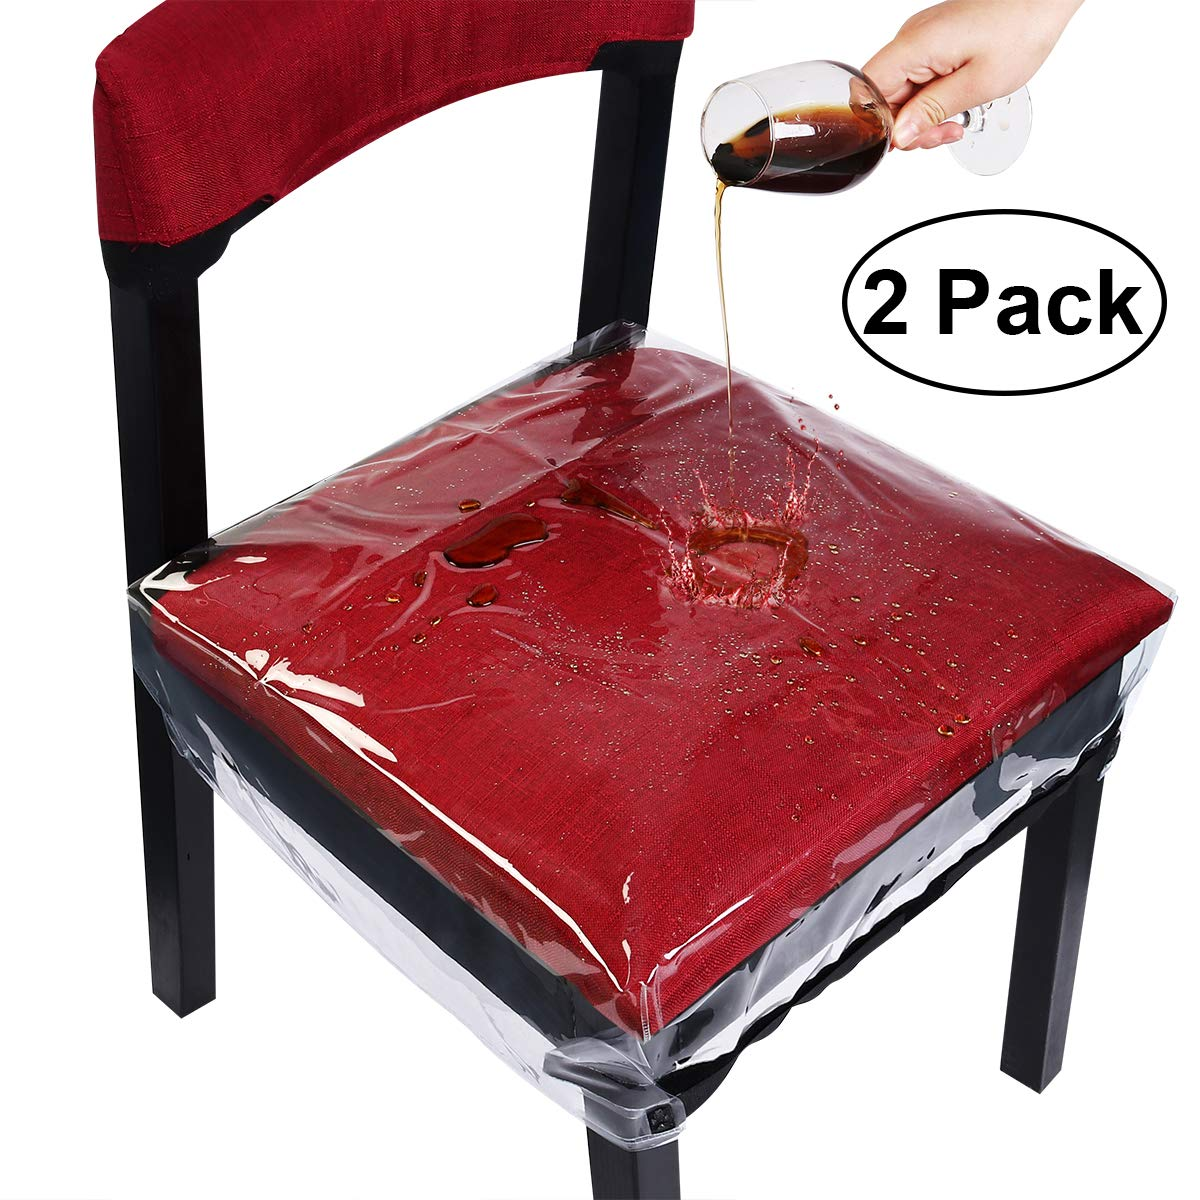 Homemaxs Dinning Chair Covers Chair Protector Waterproof Bigger Size with Adjustable Belt Strap for Most Chairs Clear, 2 Pack